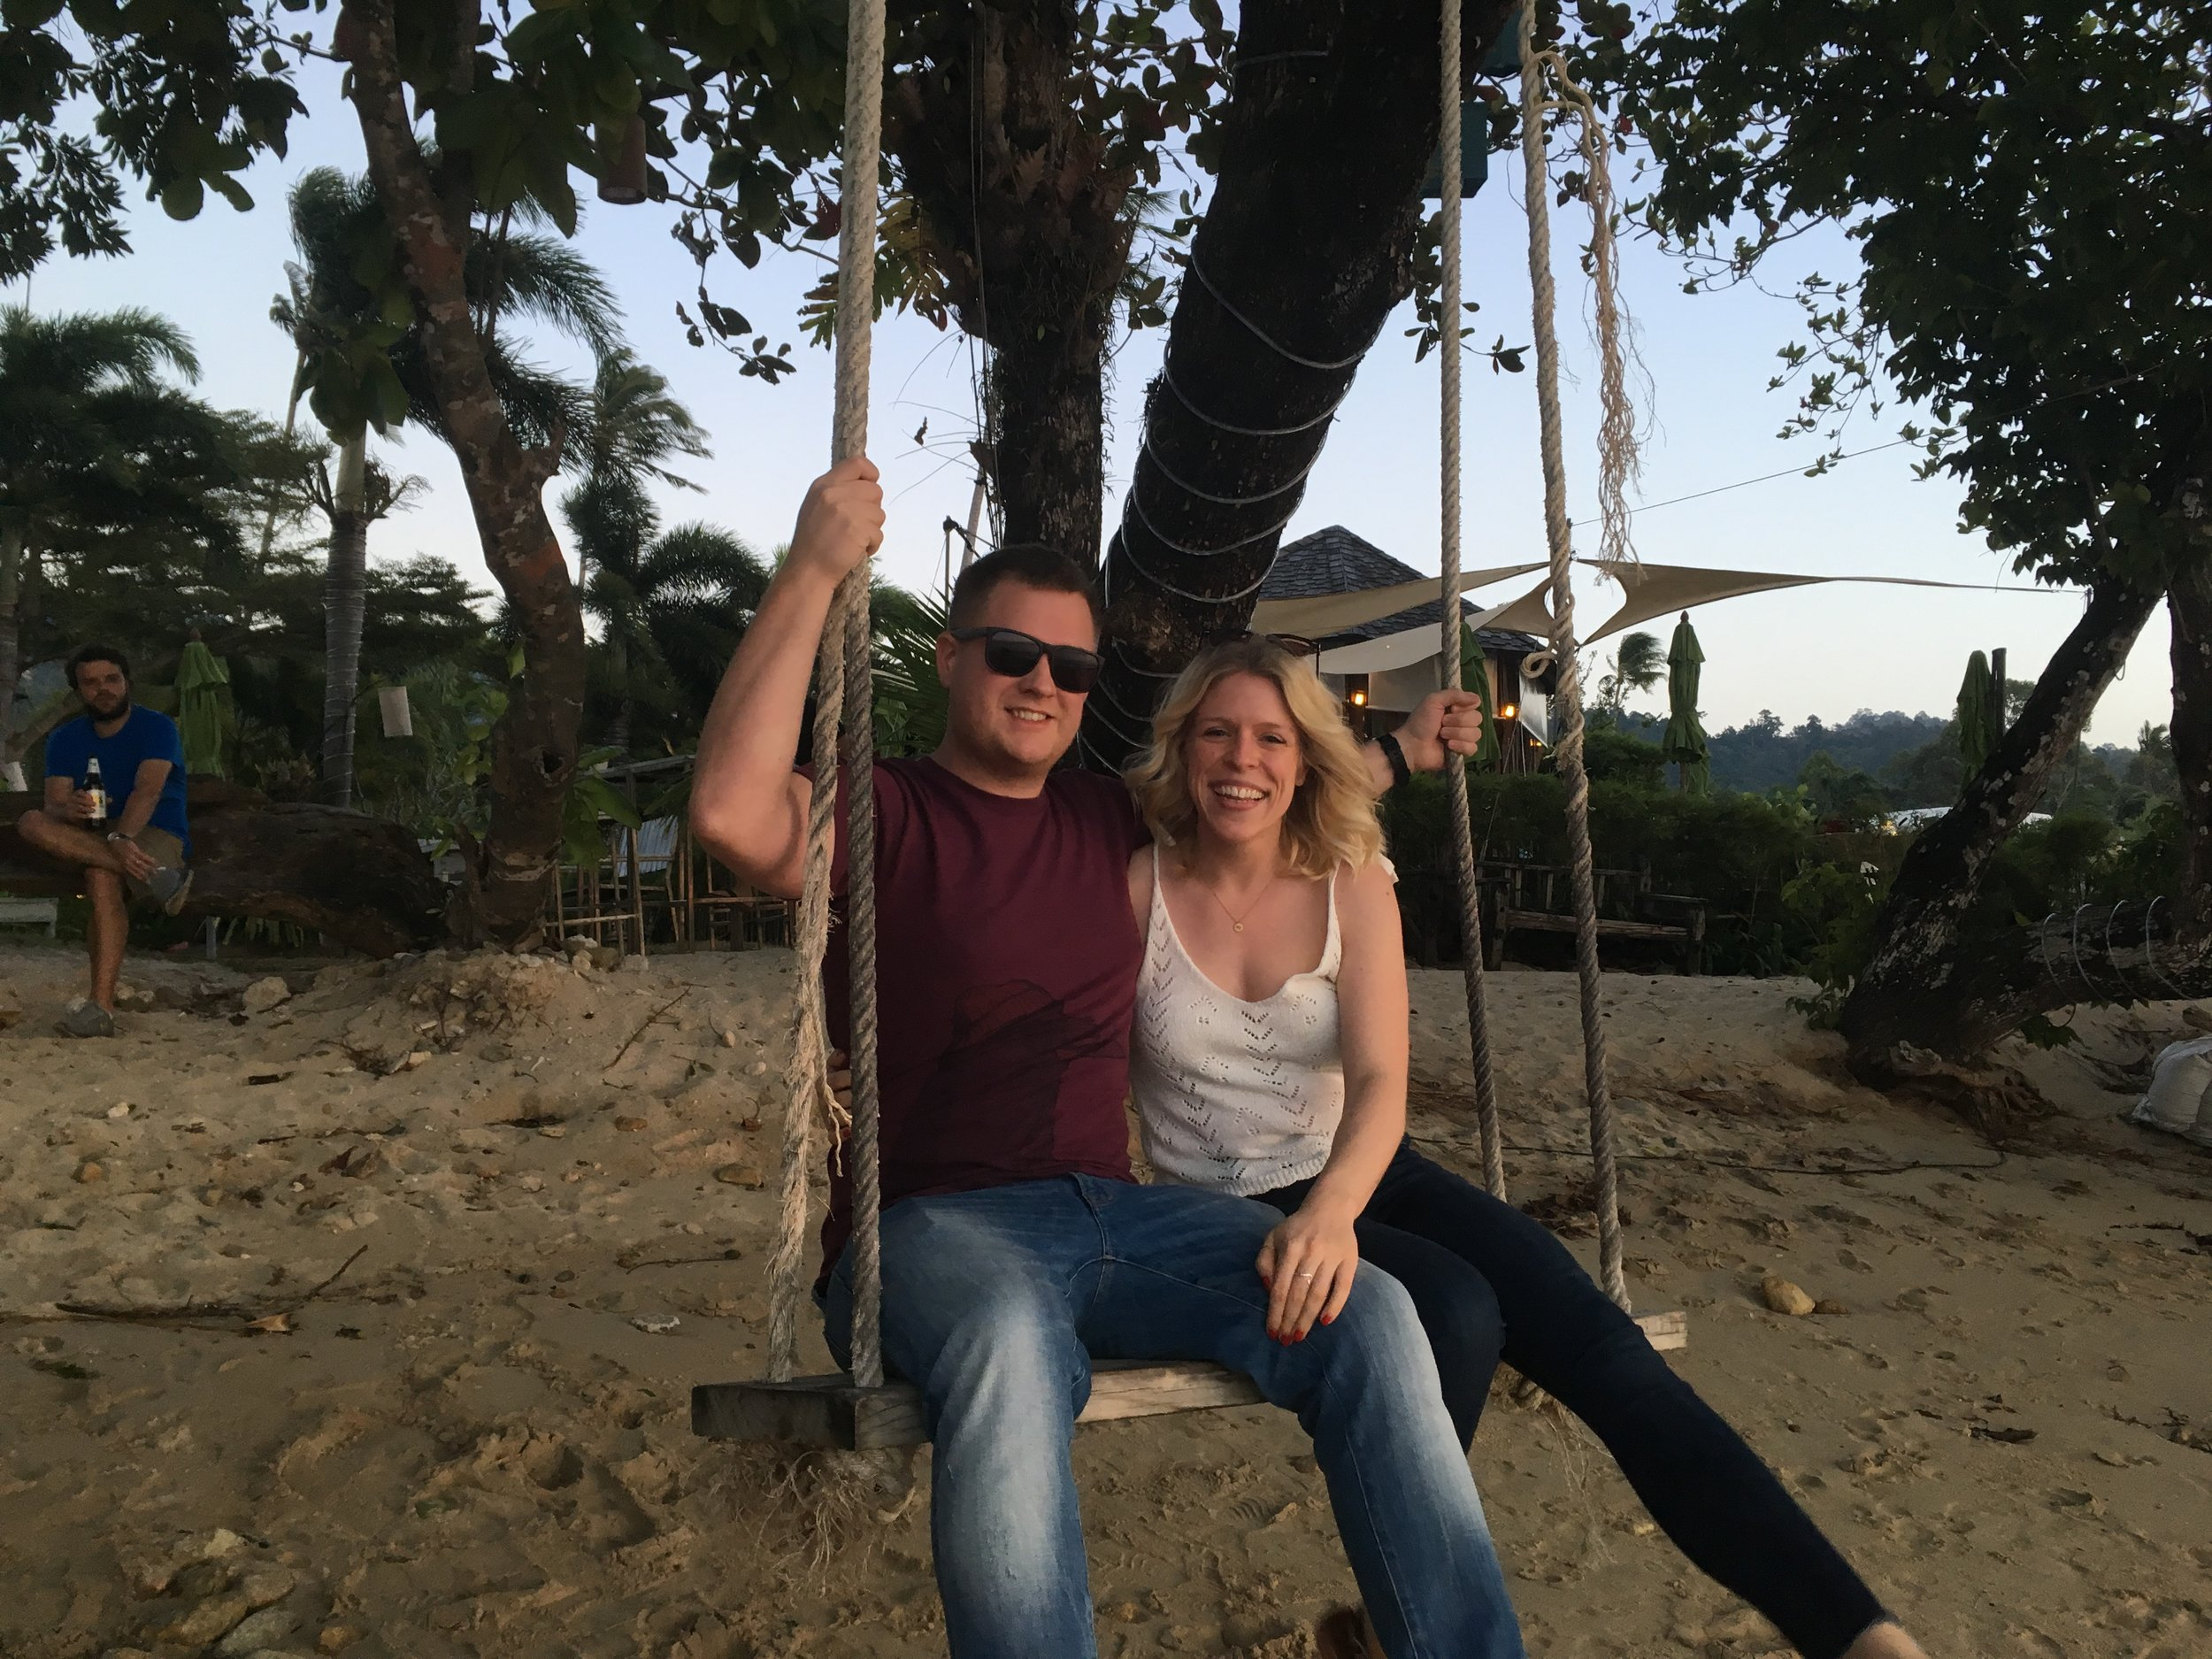 The swing on the beach, waiting for the sunset